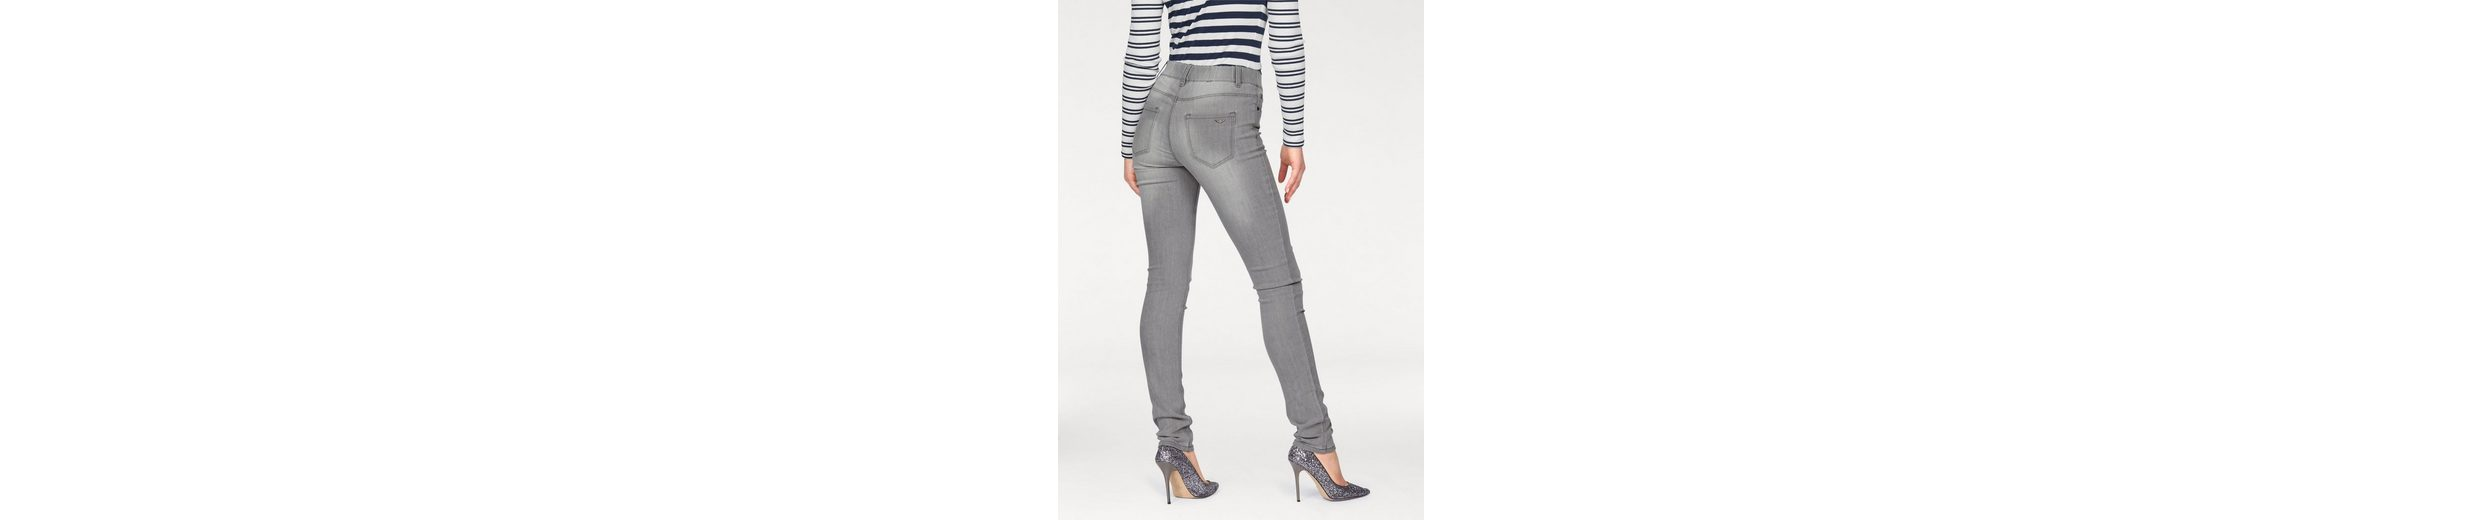 Arizona Slim-fit-Jeans mit innenliegendem Gummibund, High Waist